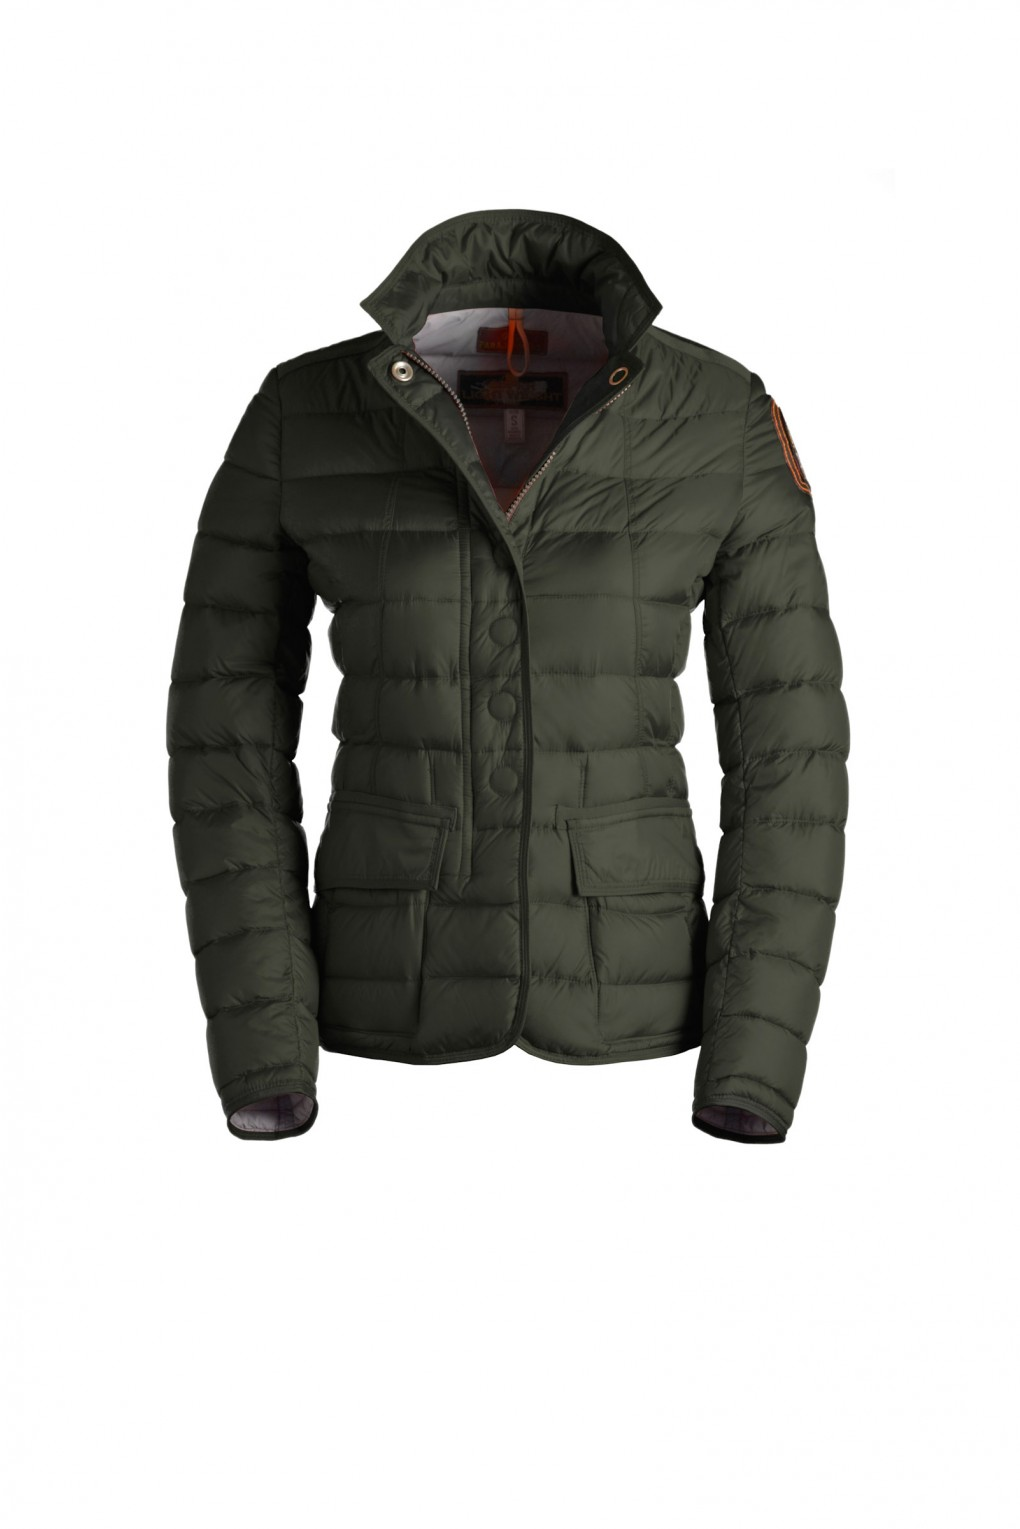 parajumpers ALISEE 6 woman outerwear Army